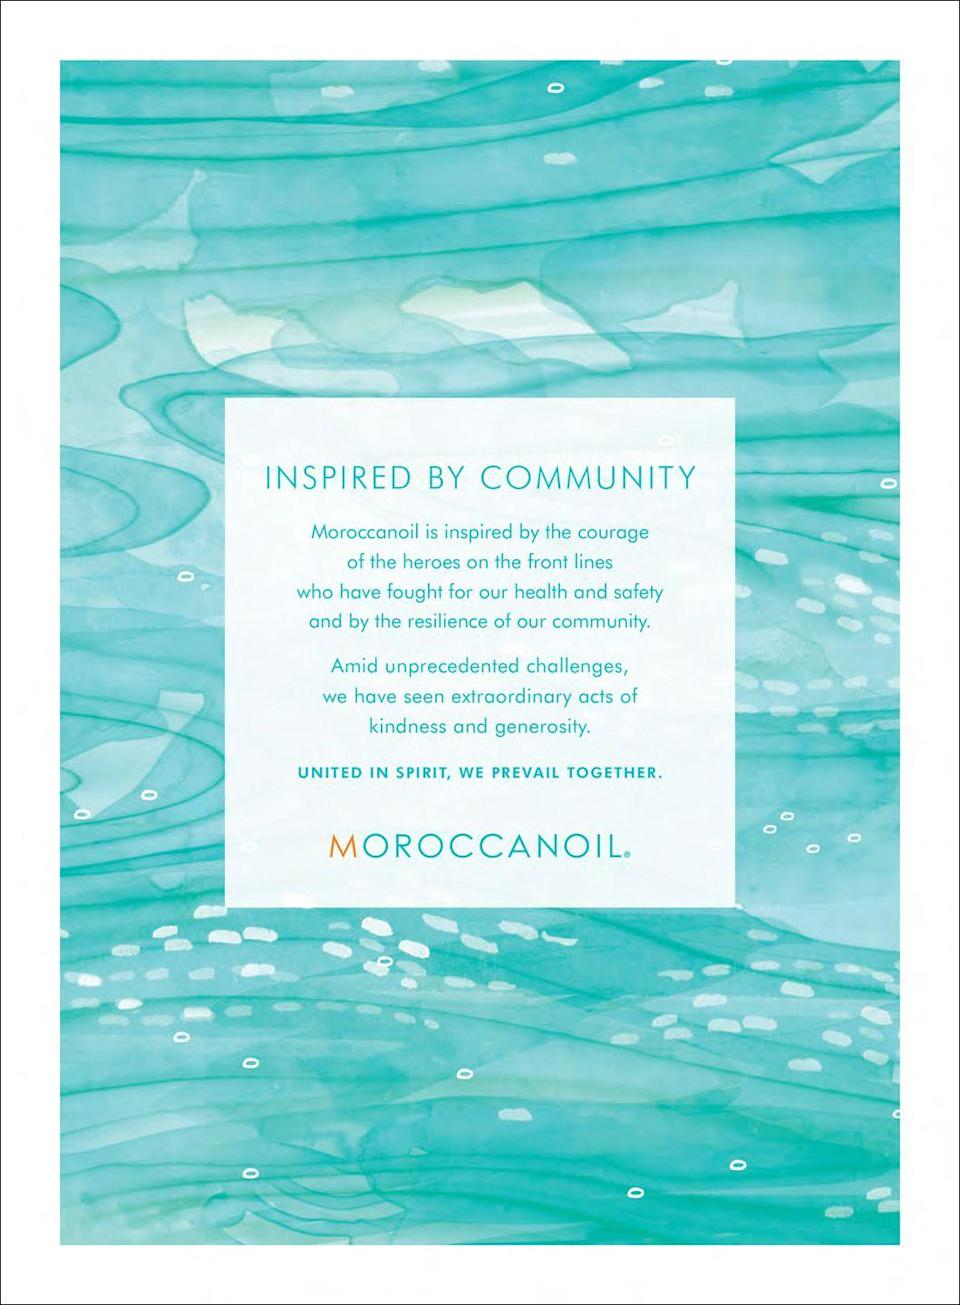 <p>Inspired by Community. </p><p>Moroccanoil is inspired by the courage of the heroes on the front lines who have fought for our health and safety and by the resilience of our community.</p><p>Amid unprecedented challenges, we have seen extraordinary acts of kindness and generosity.</p><p>United in spirit, we prevail together.</p>